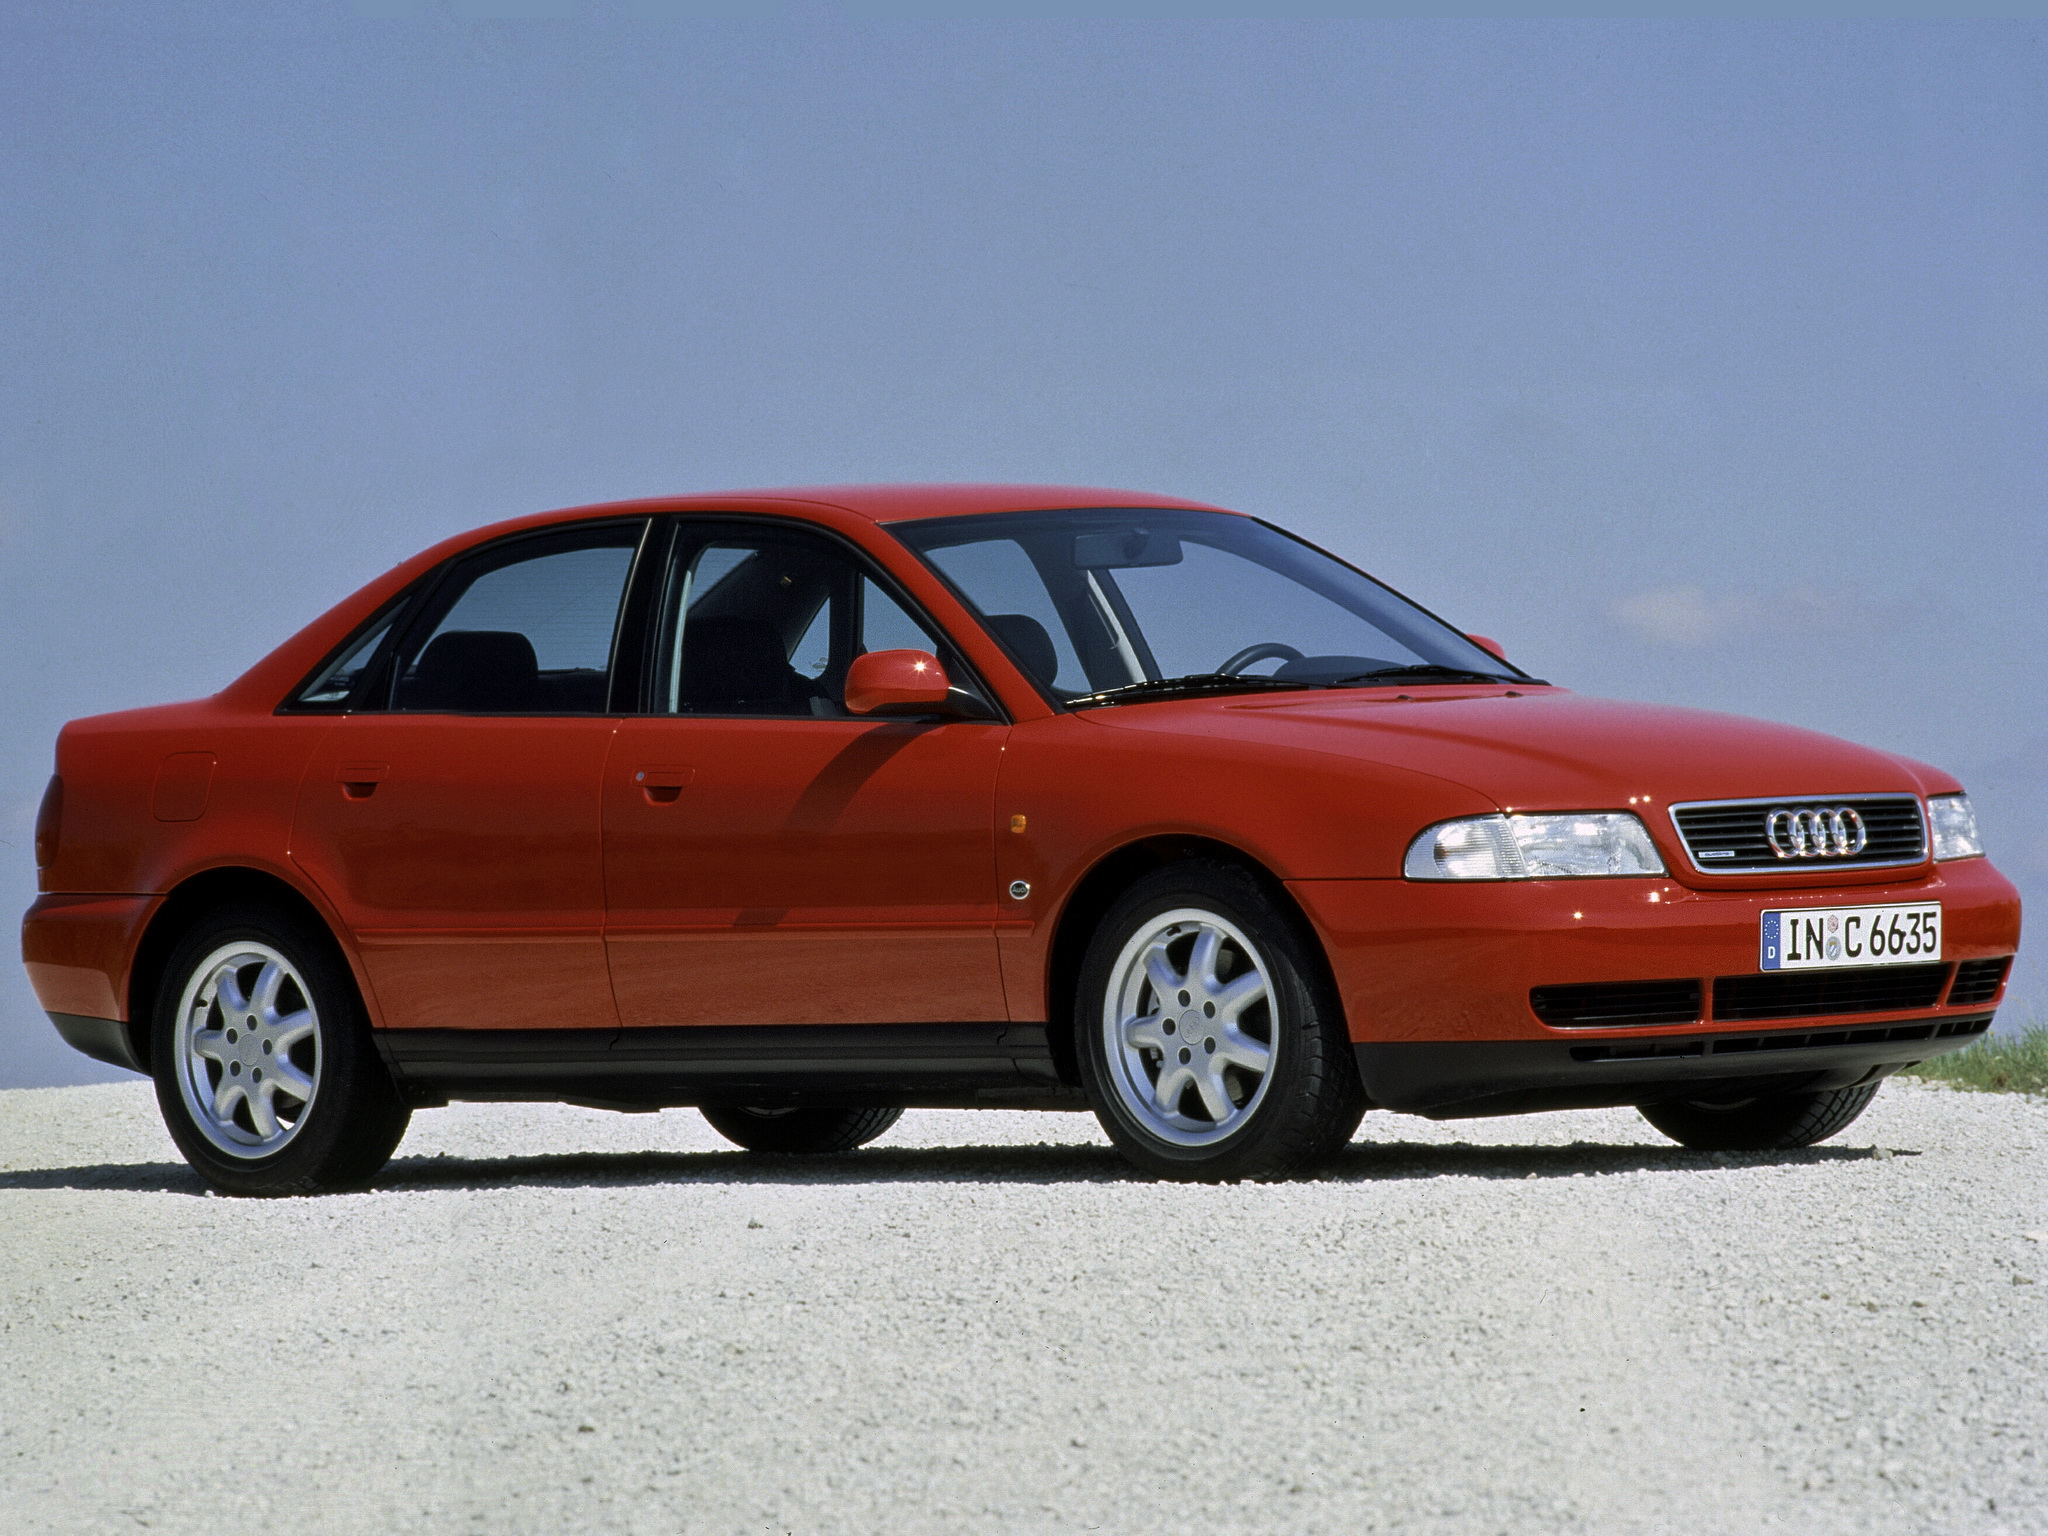 1994 Audi A4 8db5 Pictures Information And Specs Auto